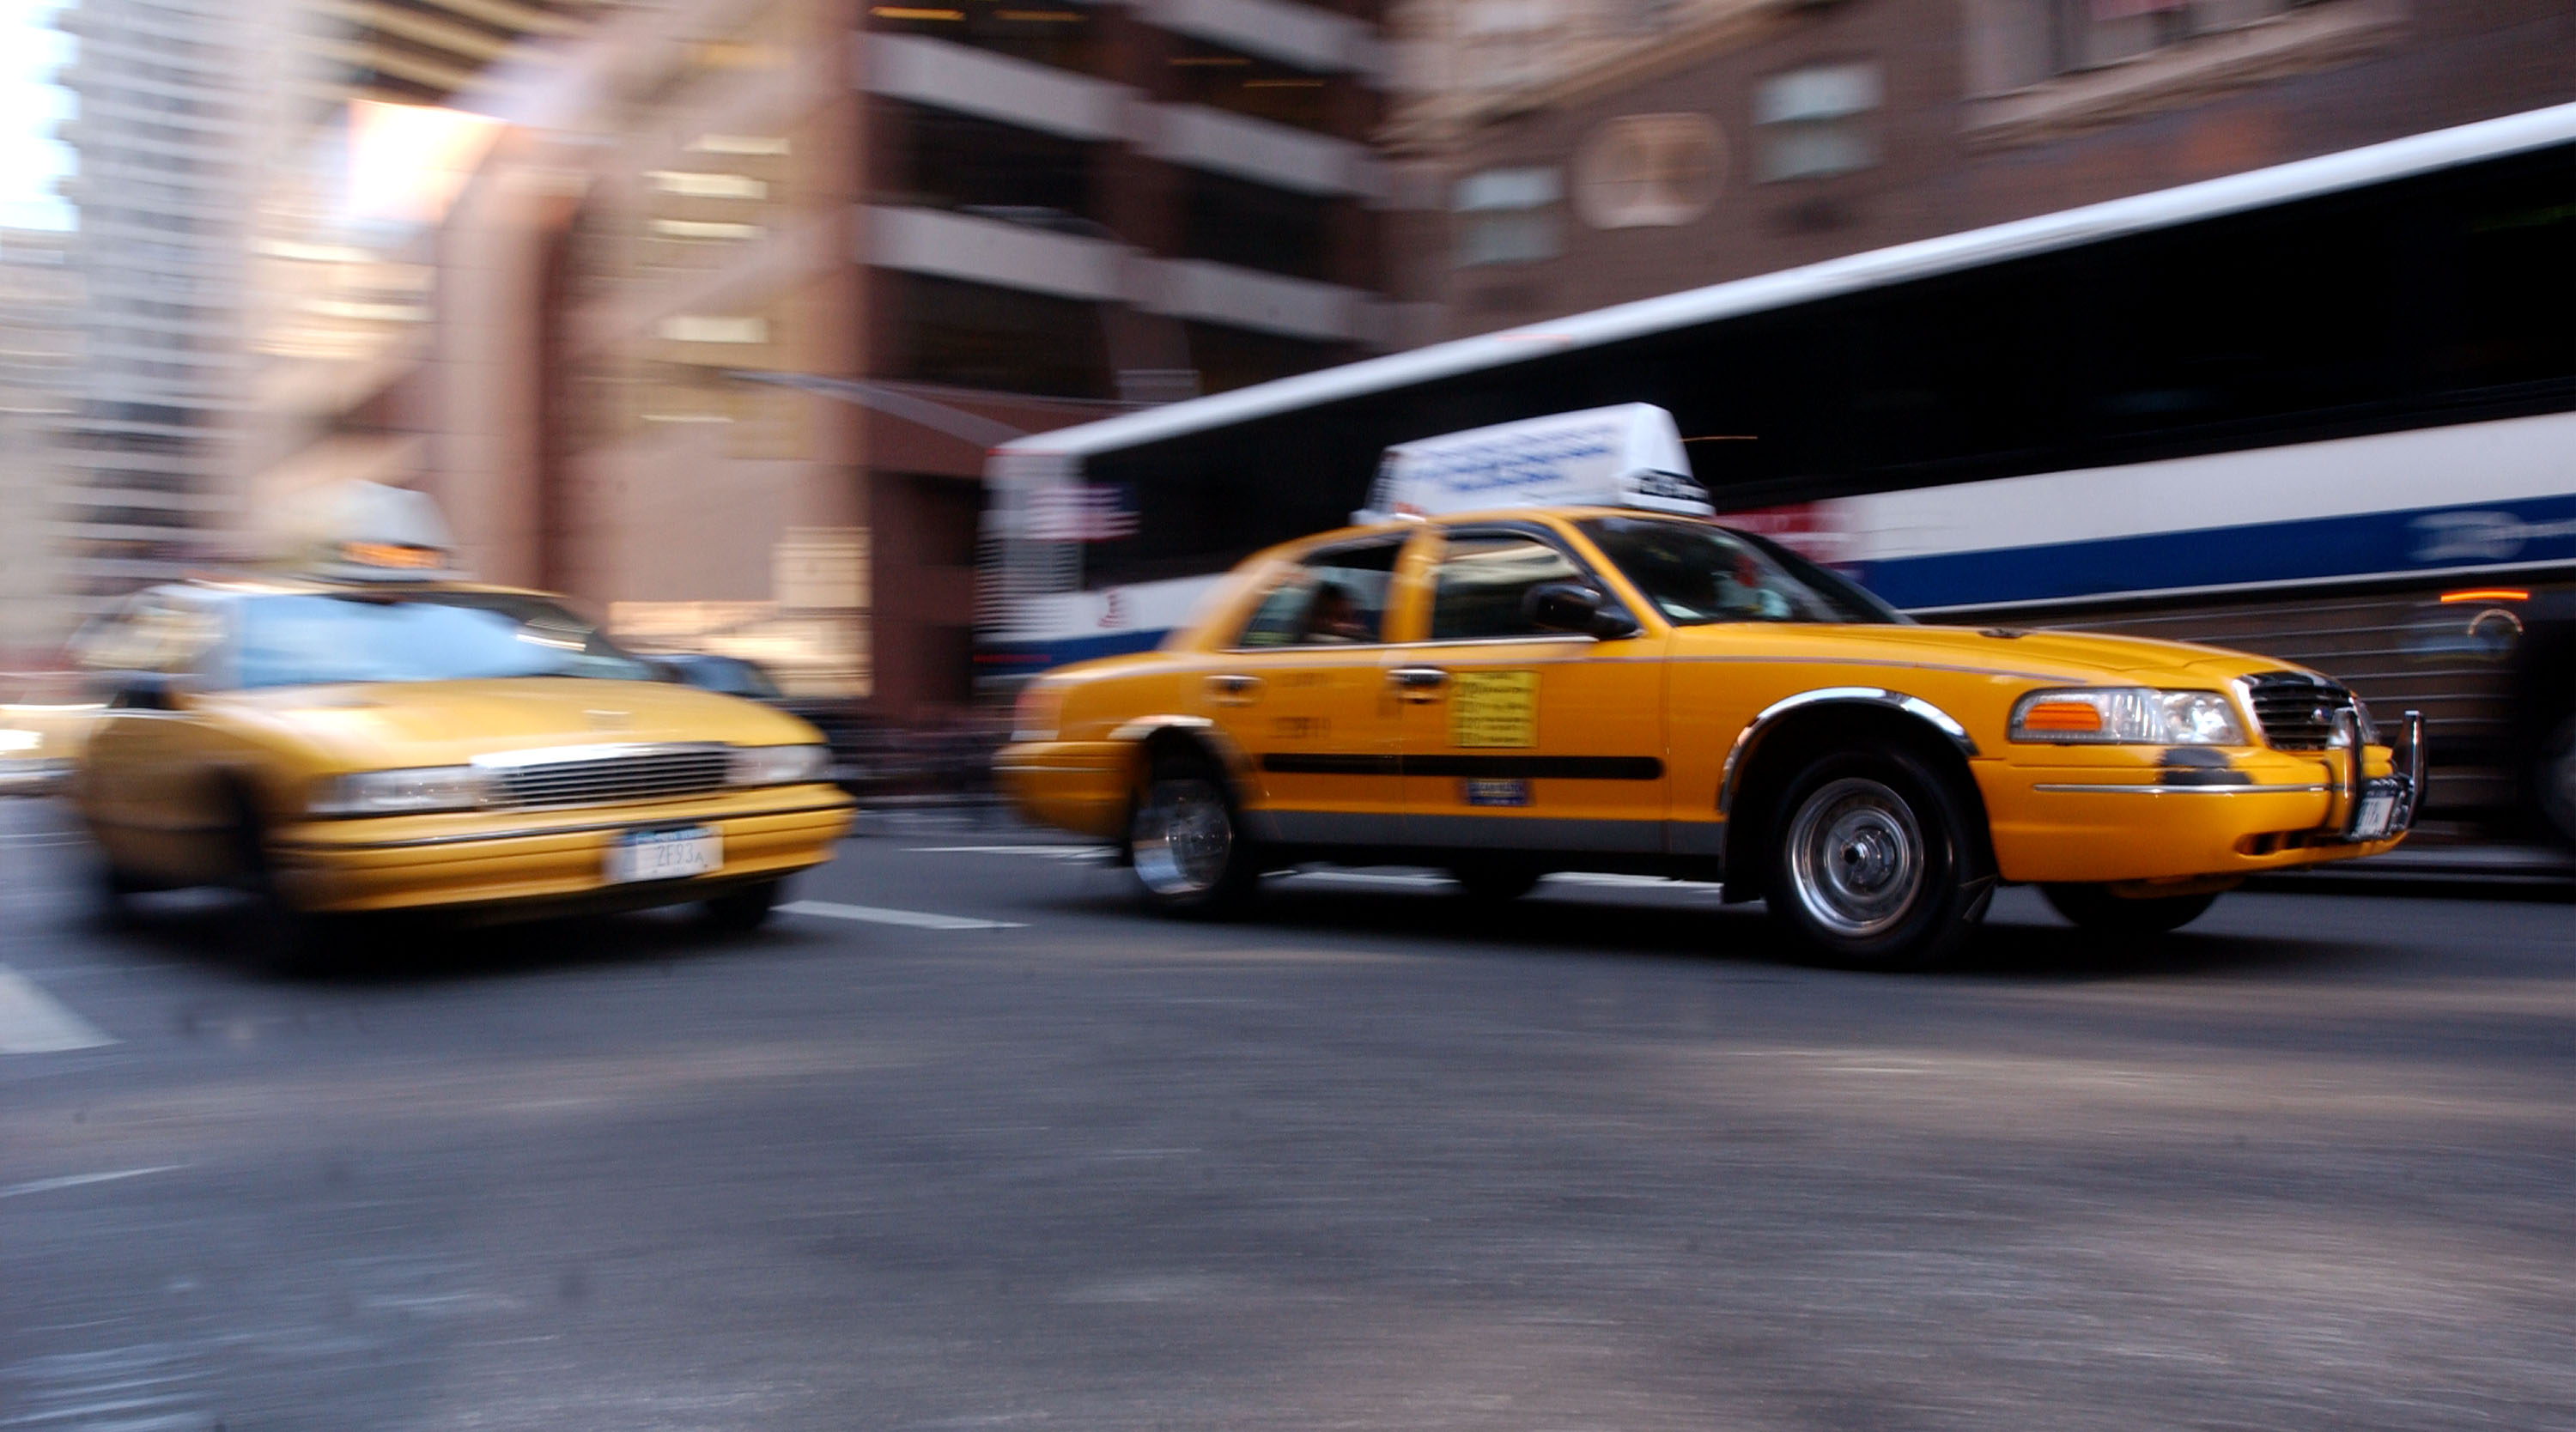 New York Taxi Industry Experiences Slowdown